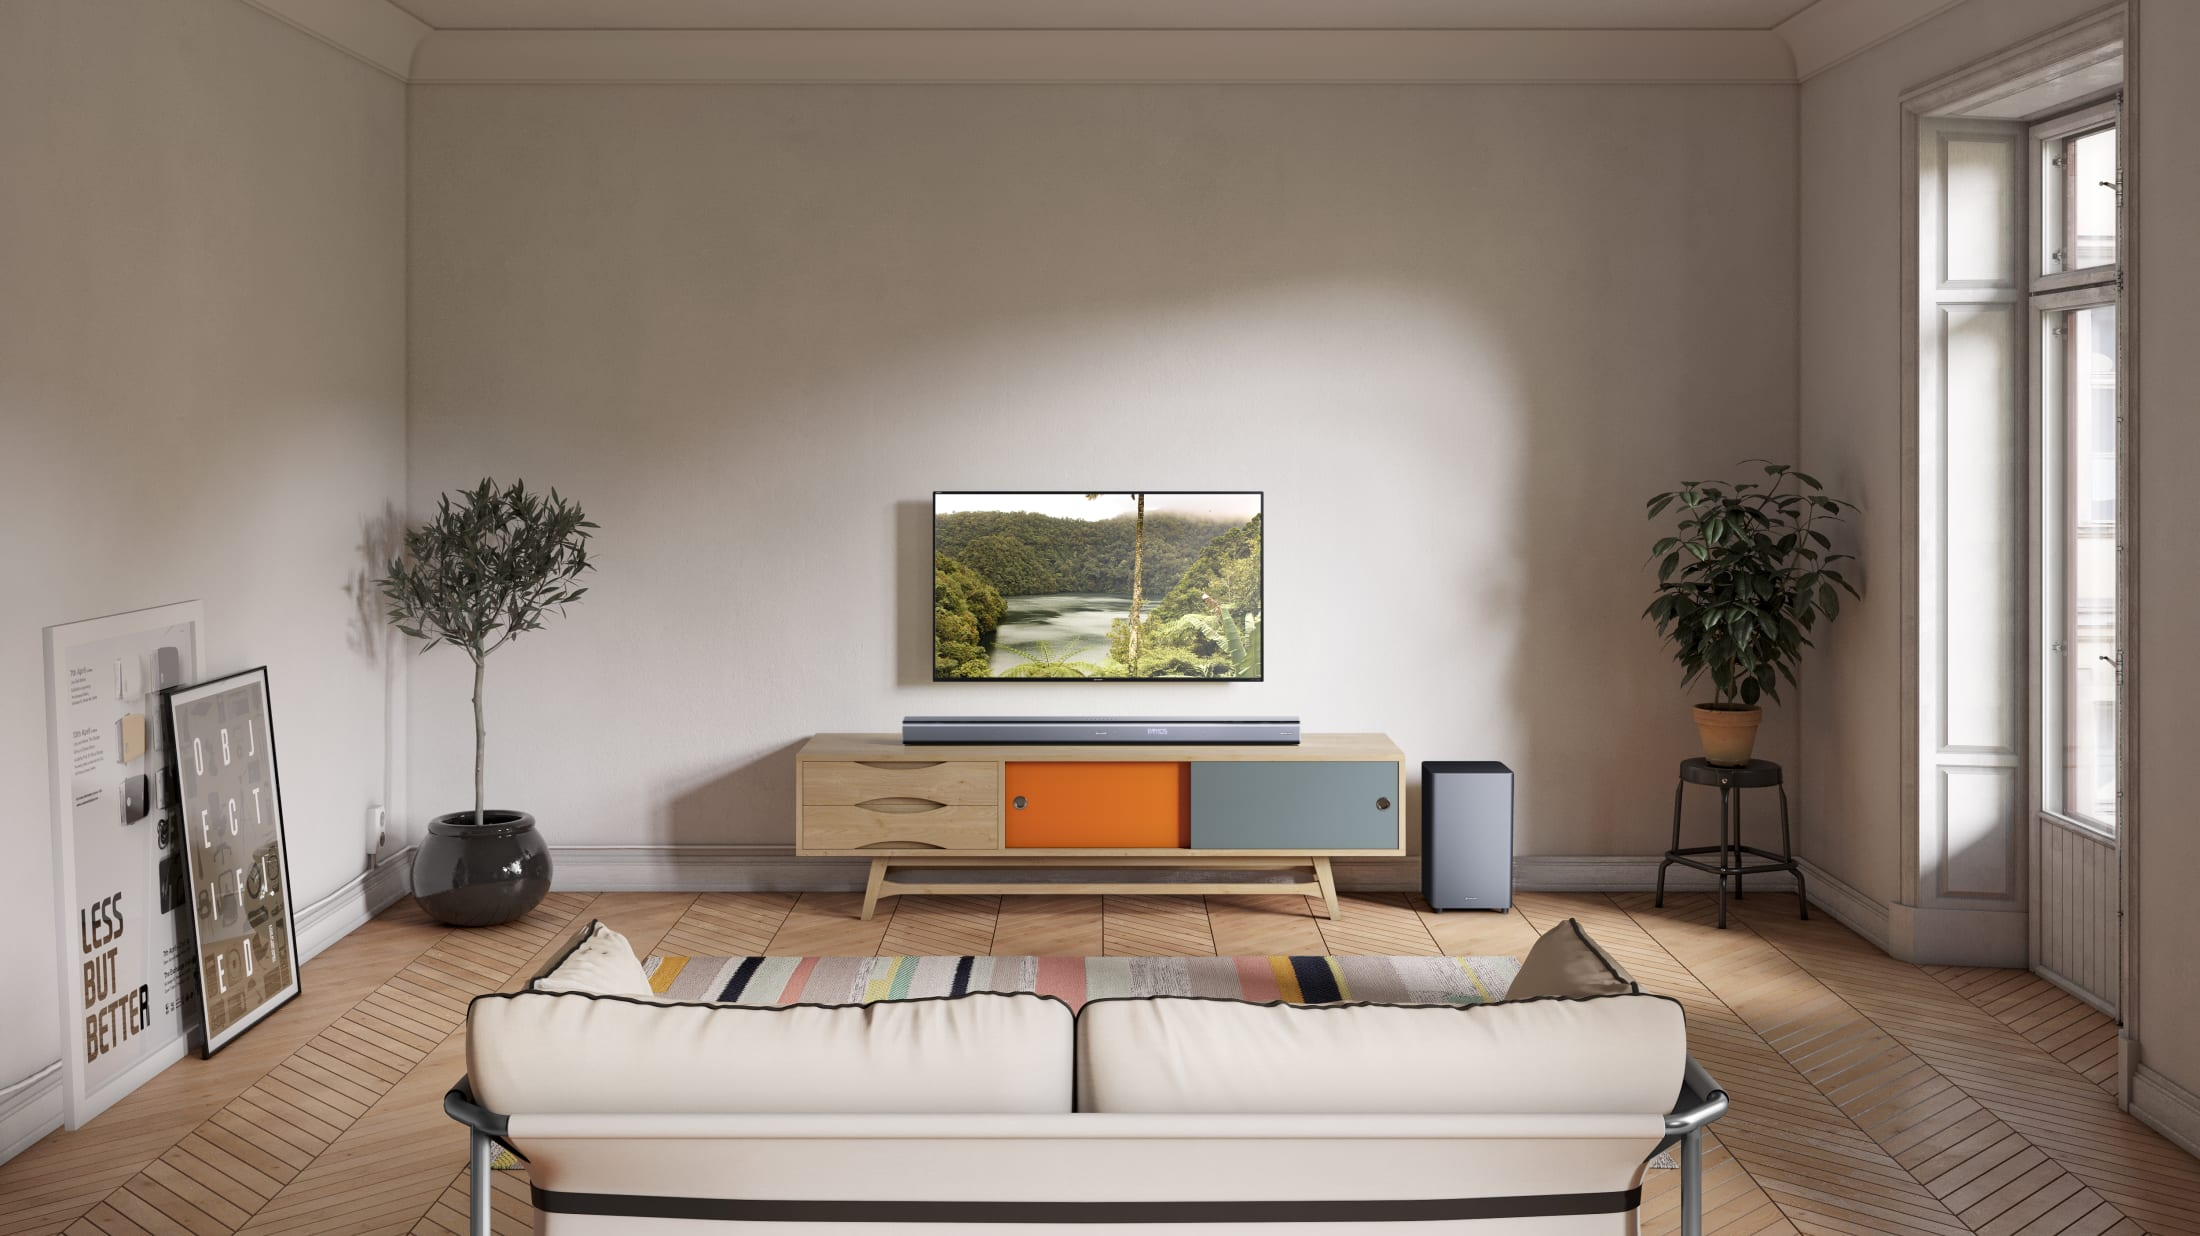 5.1.2 Dolby Atmos Soundbar with wireless Subwoofer, 760 W and with immersive 3D surround sound. Suitable for 55 inch TV and above.